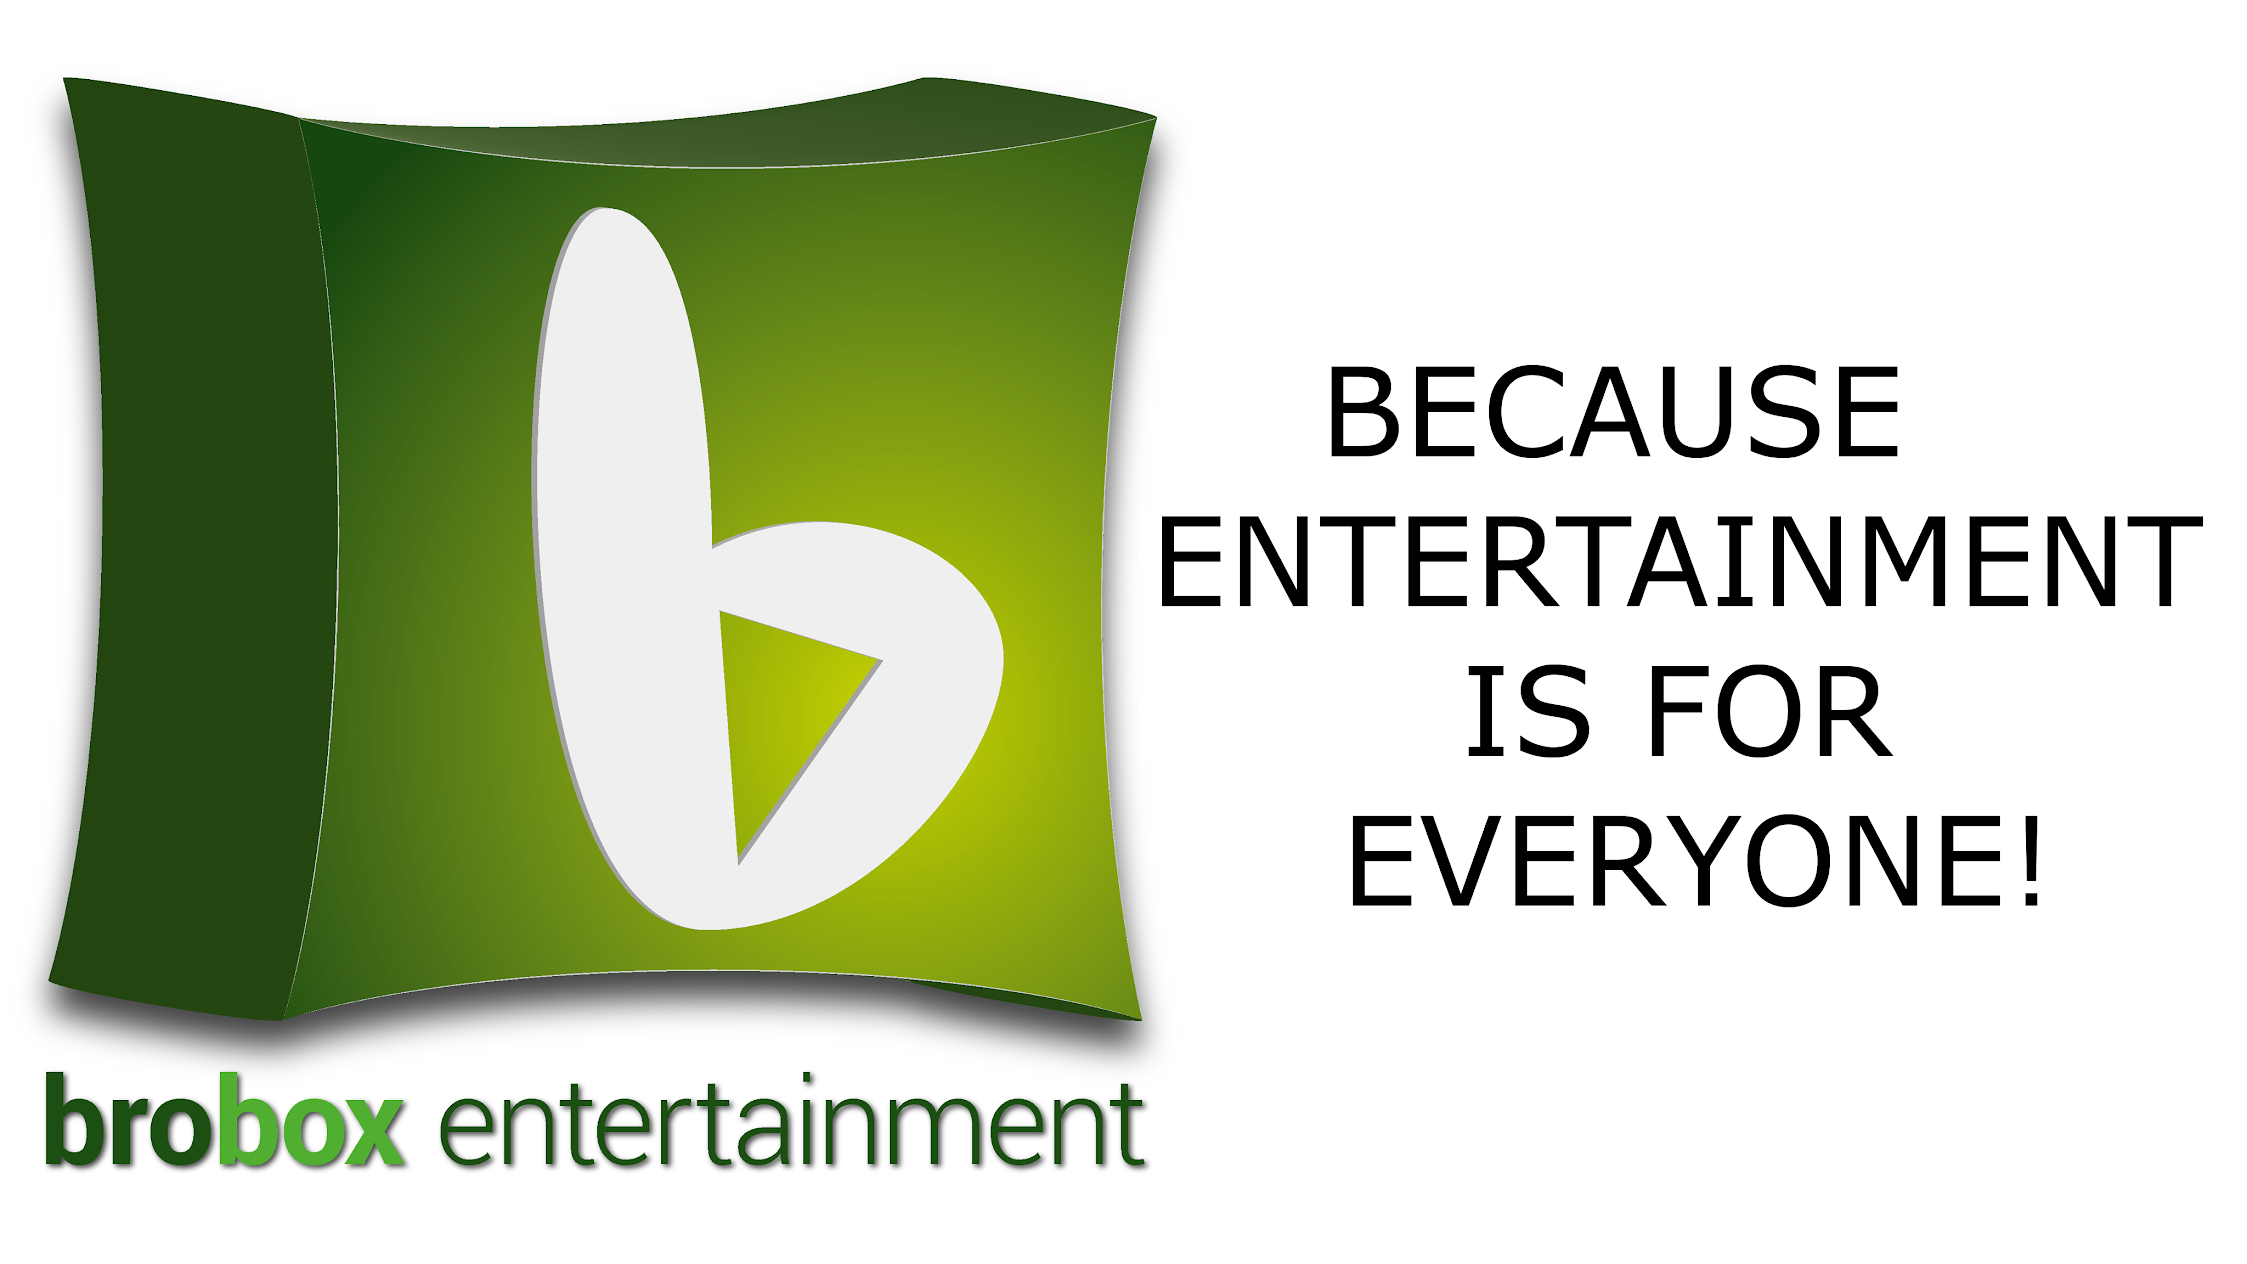 BroBox Entertainment